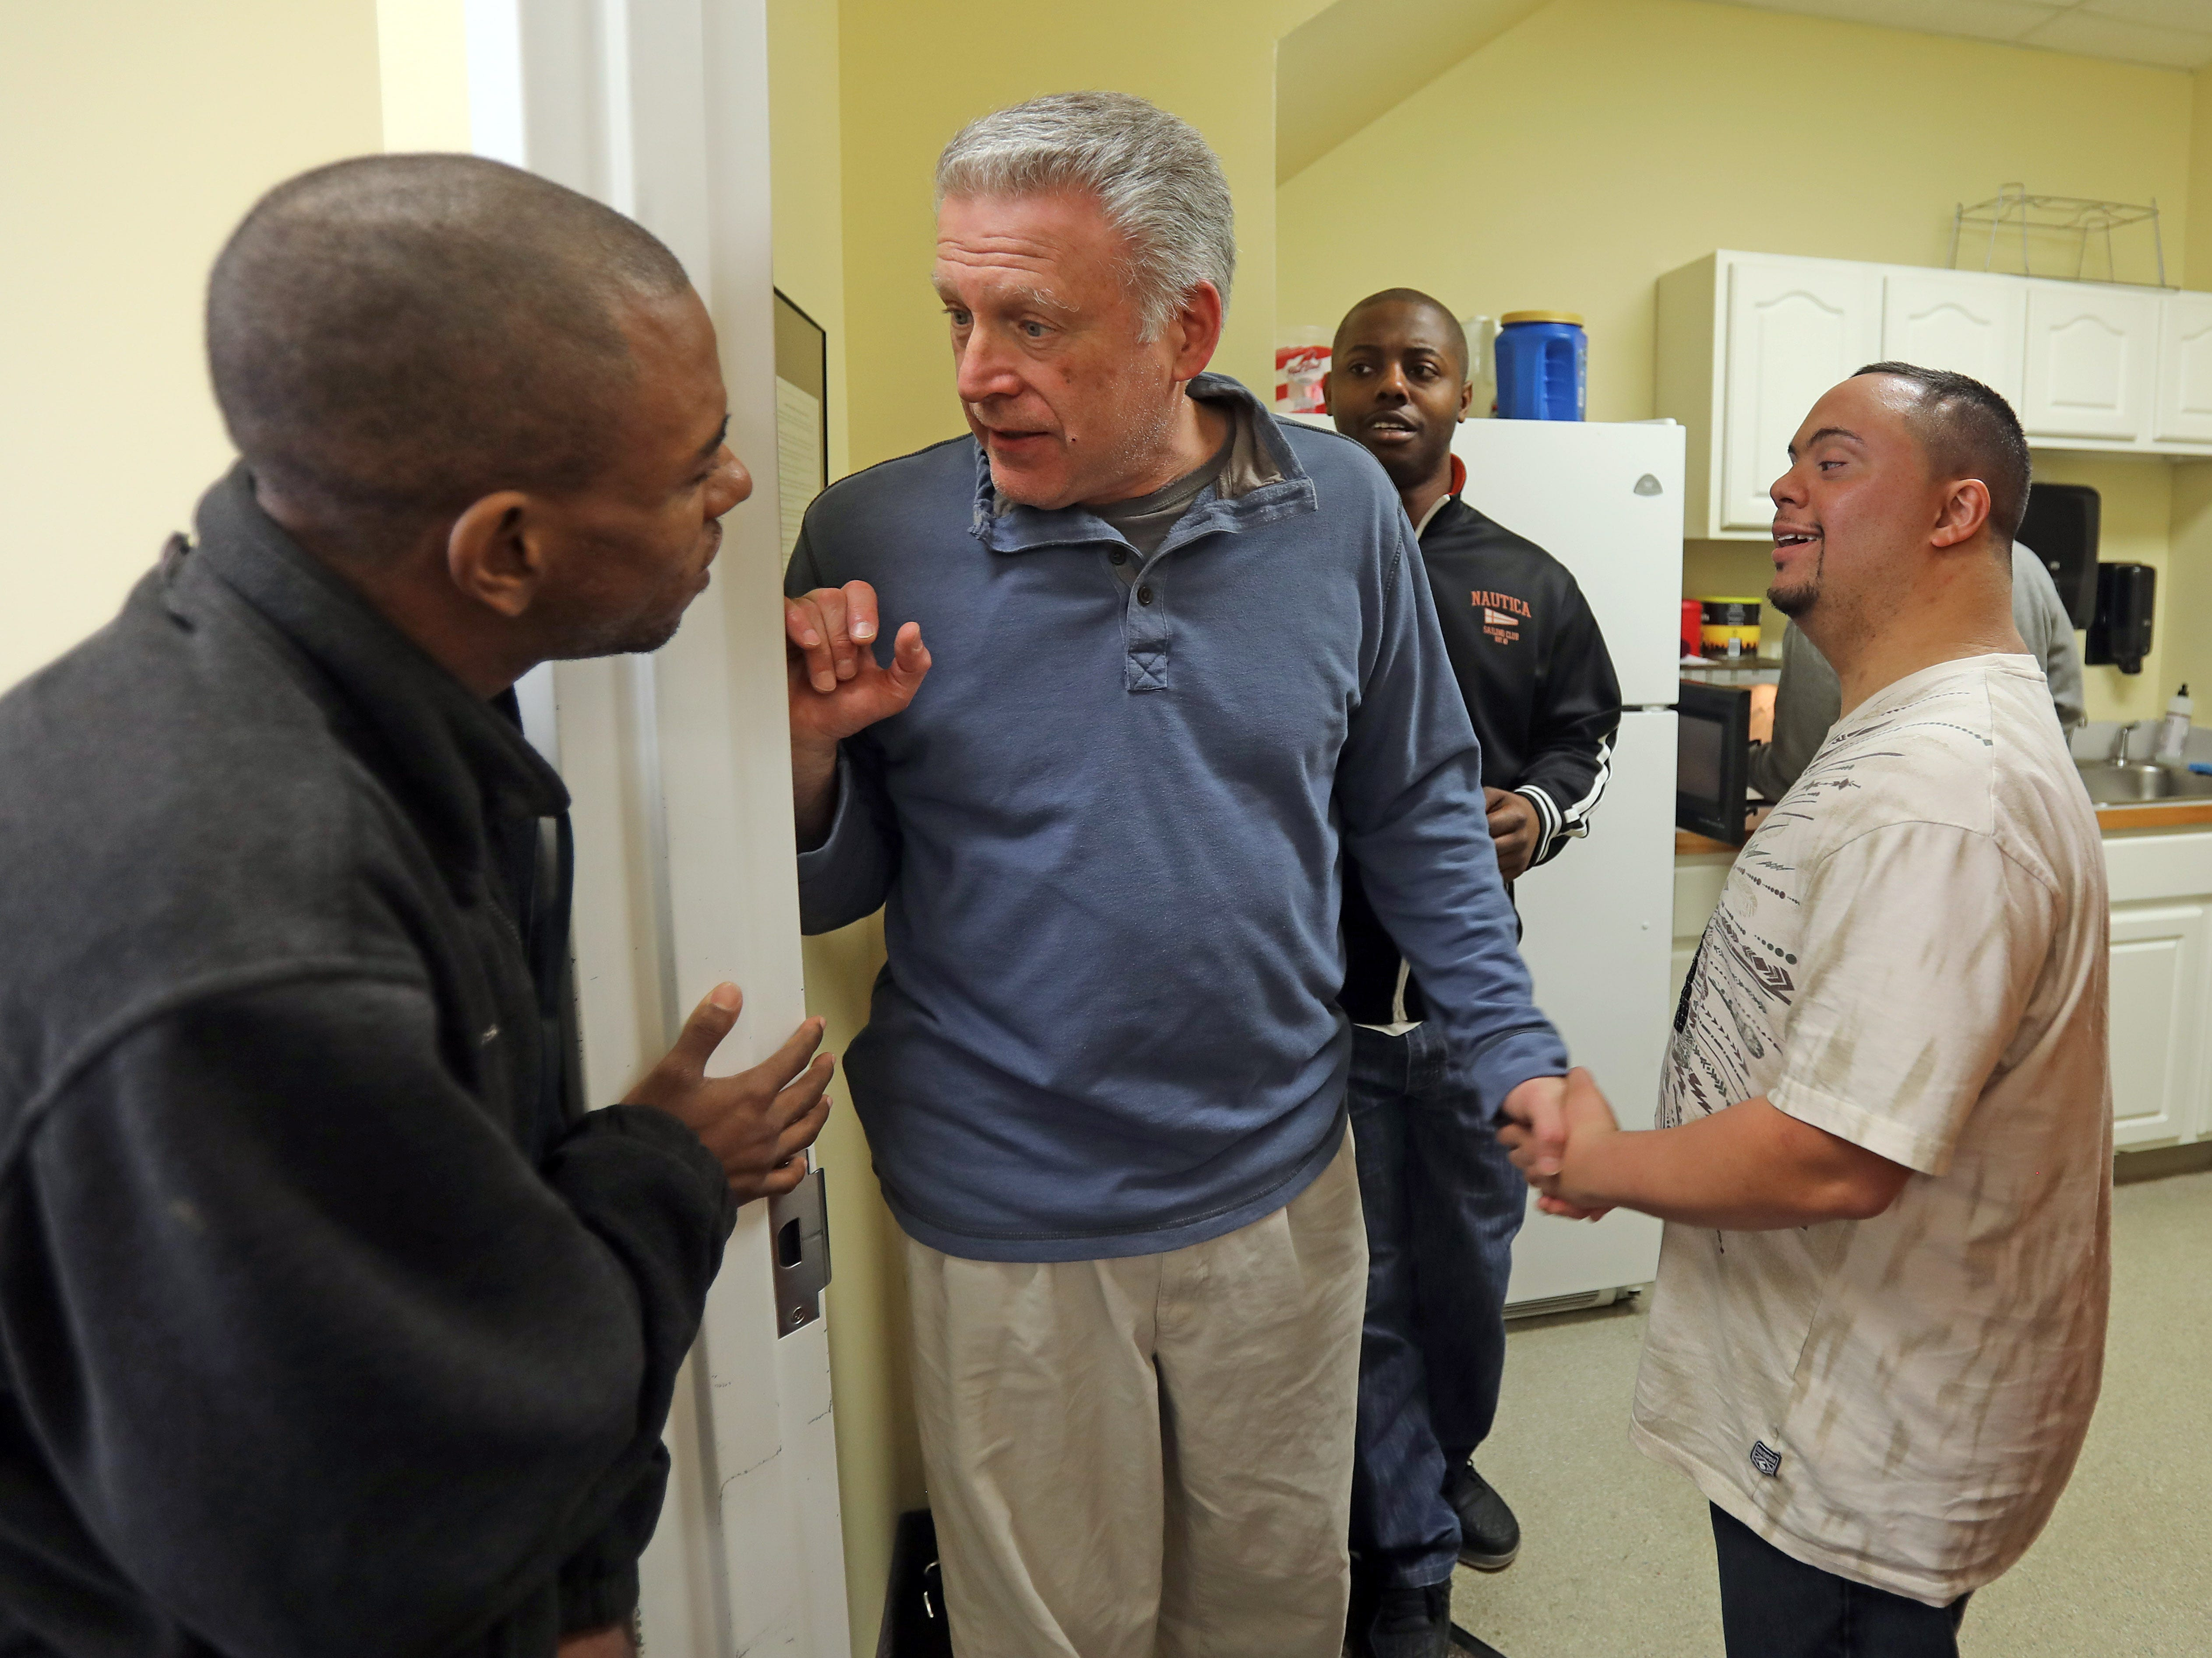 Anthony Mundy, 29, right, hangs out with Sebastien Castel, left, Dean, center, and Tyshawn Stewartson, right, during a day program at Jawonio called Without Walls or WOW in Spring Valley March 14, 2019.